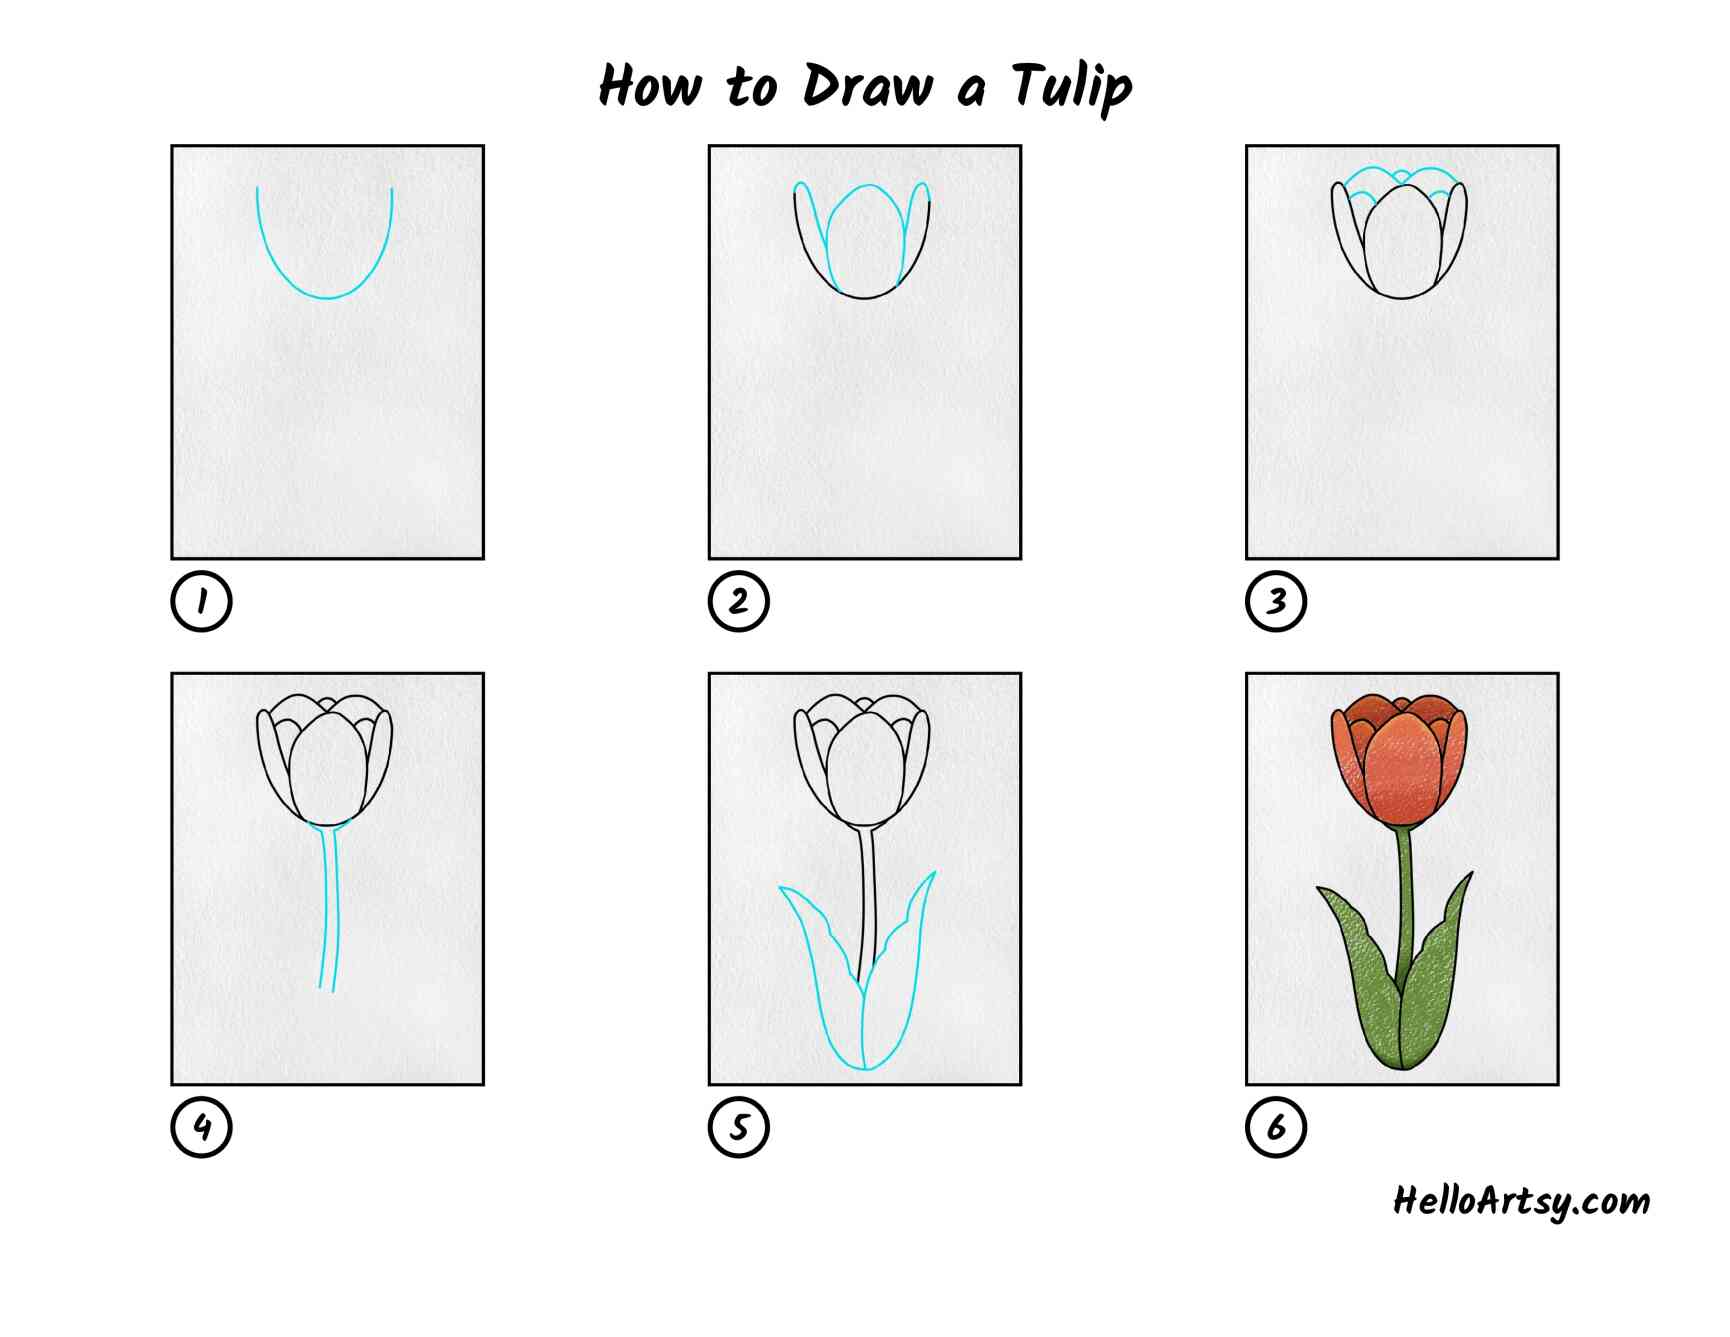 How To Draw A Tulip: All Steps